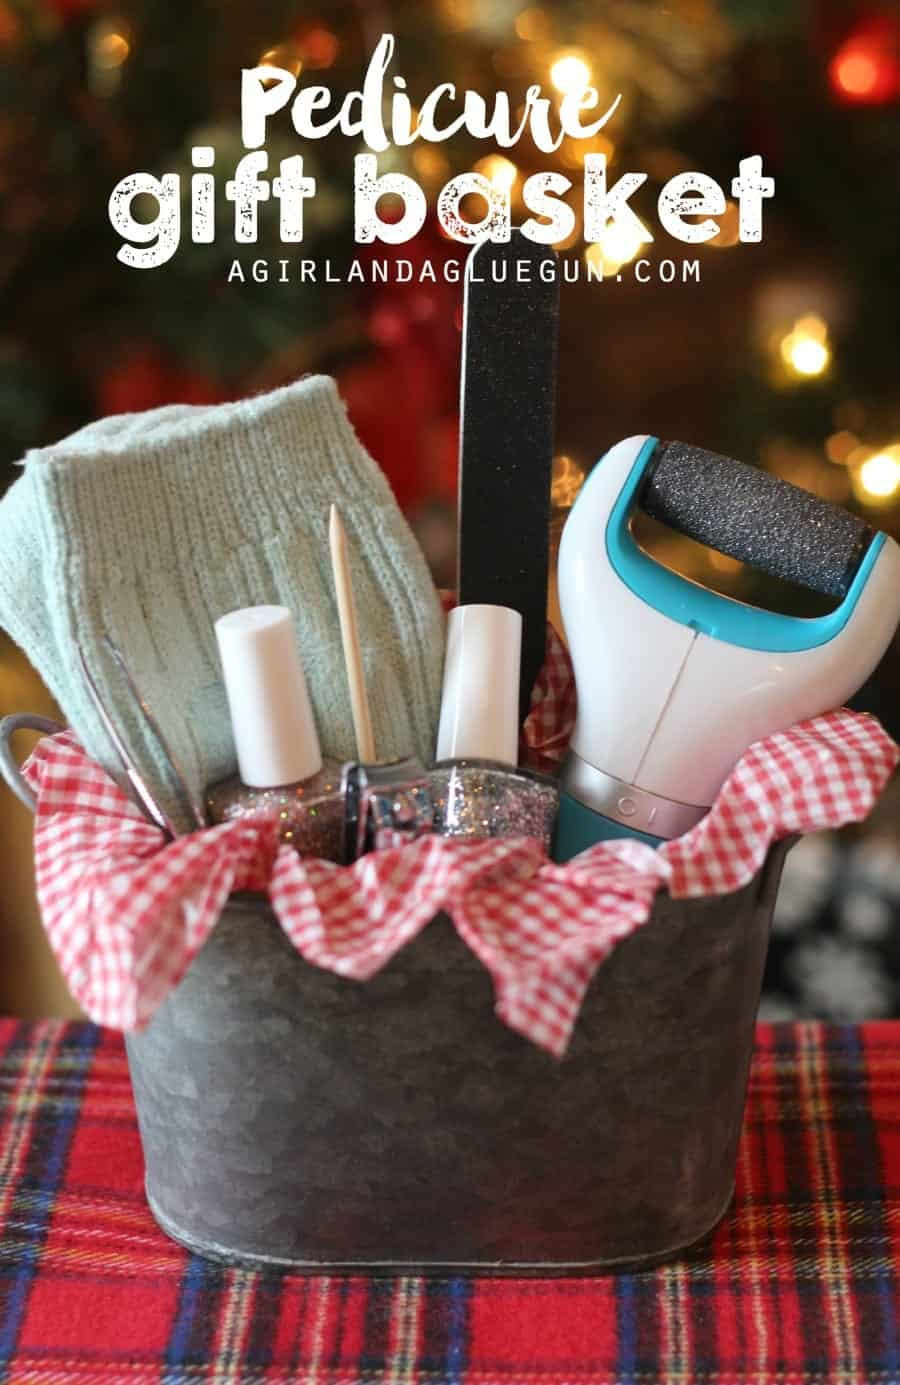 pedicure gift basket ideas